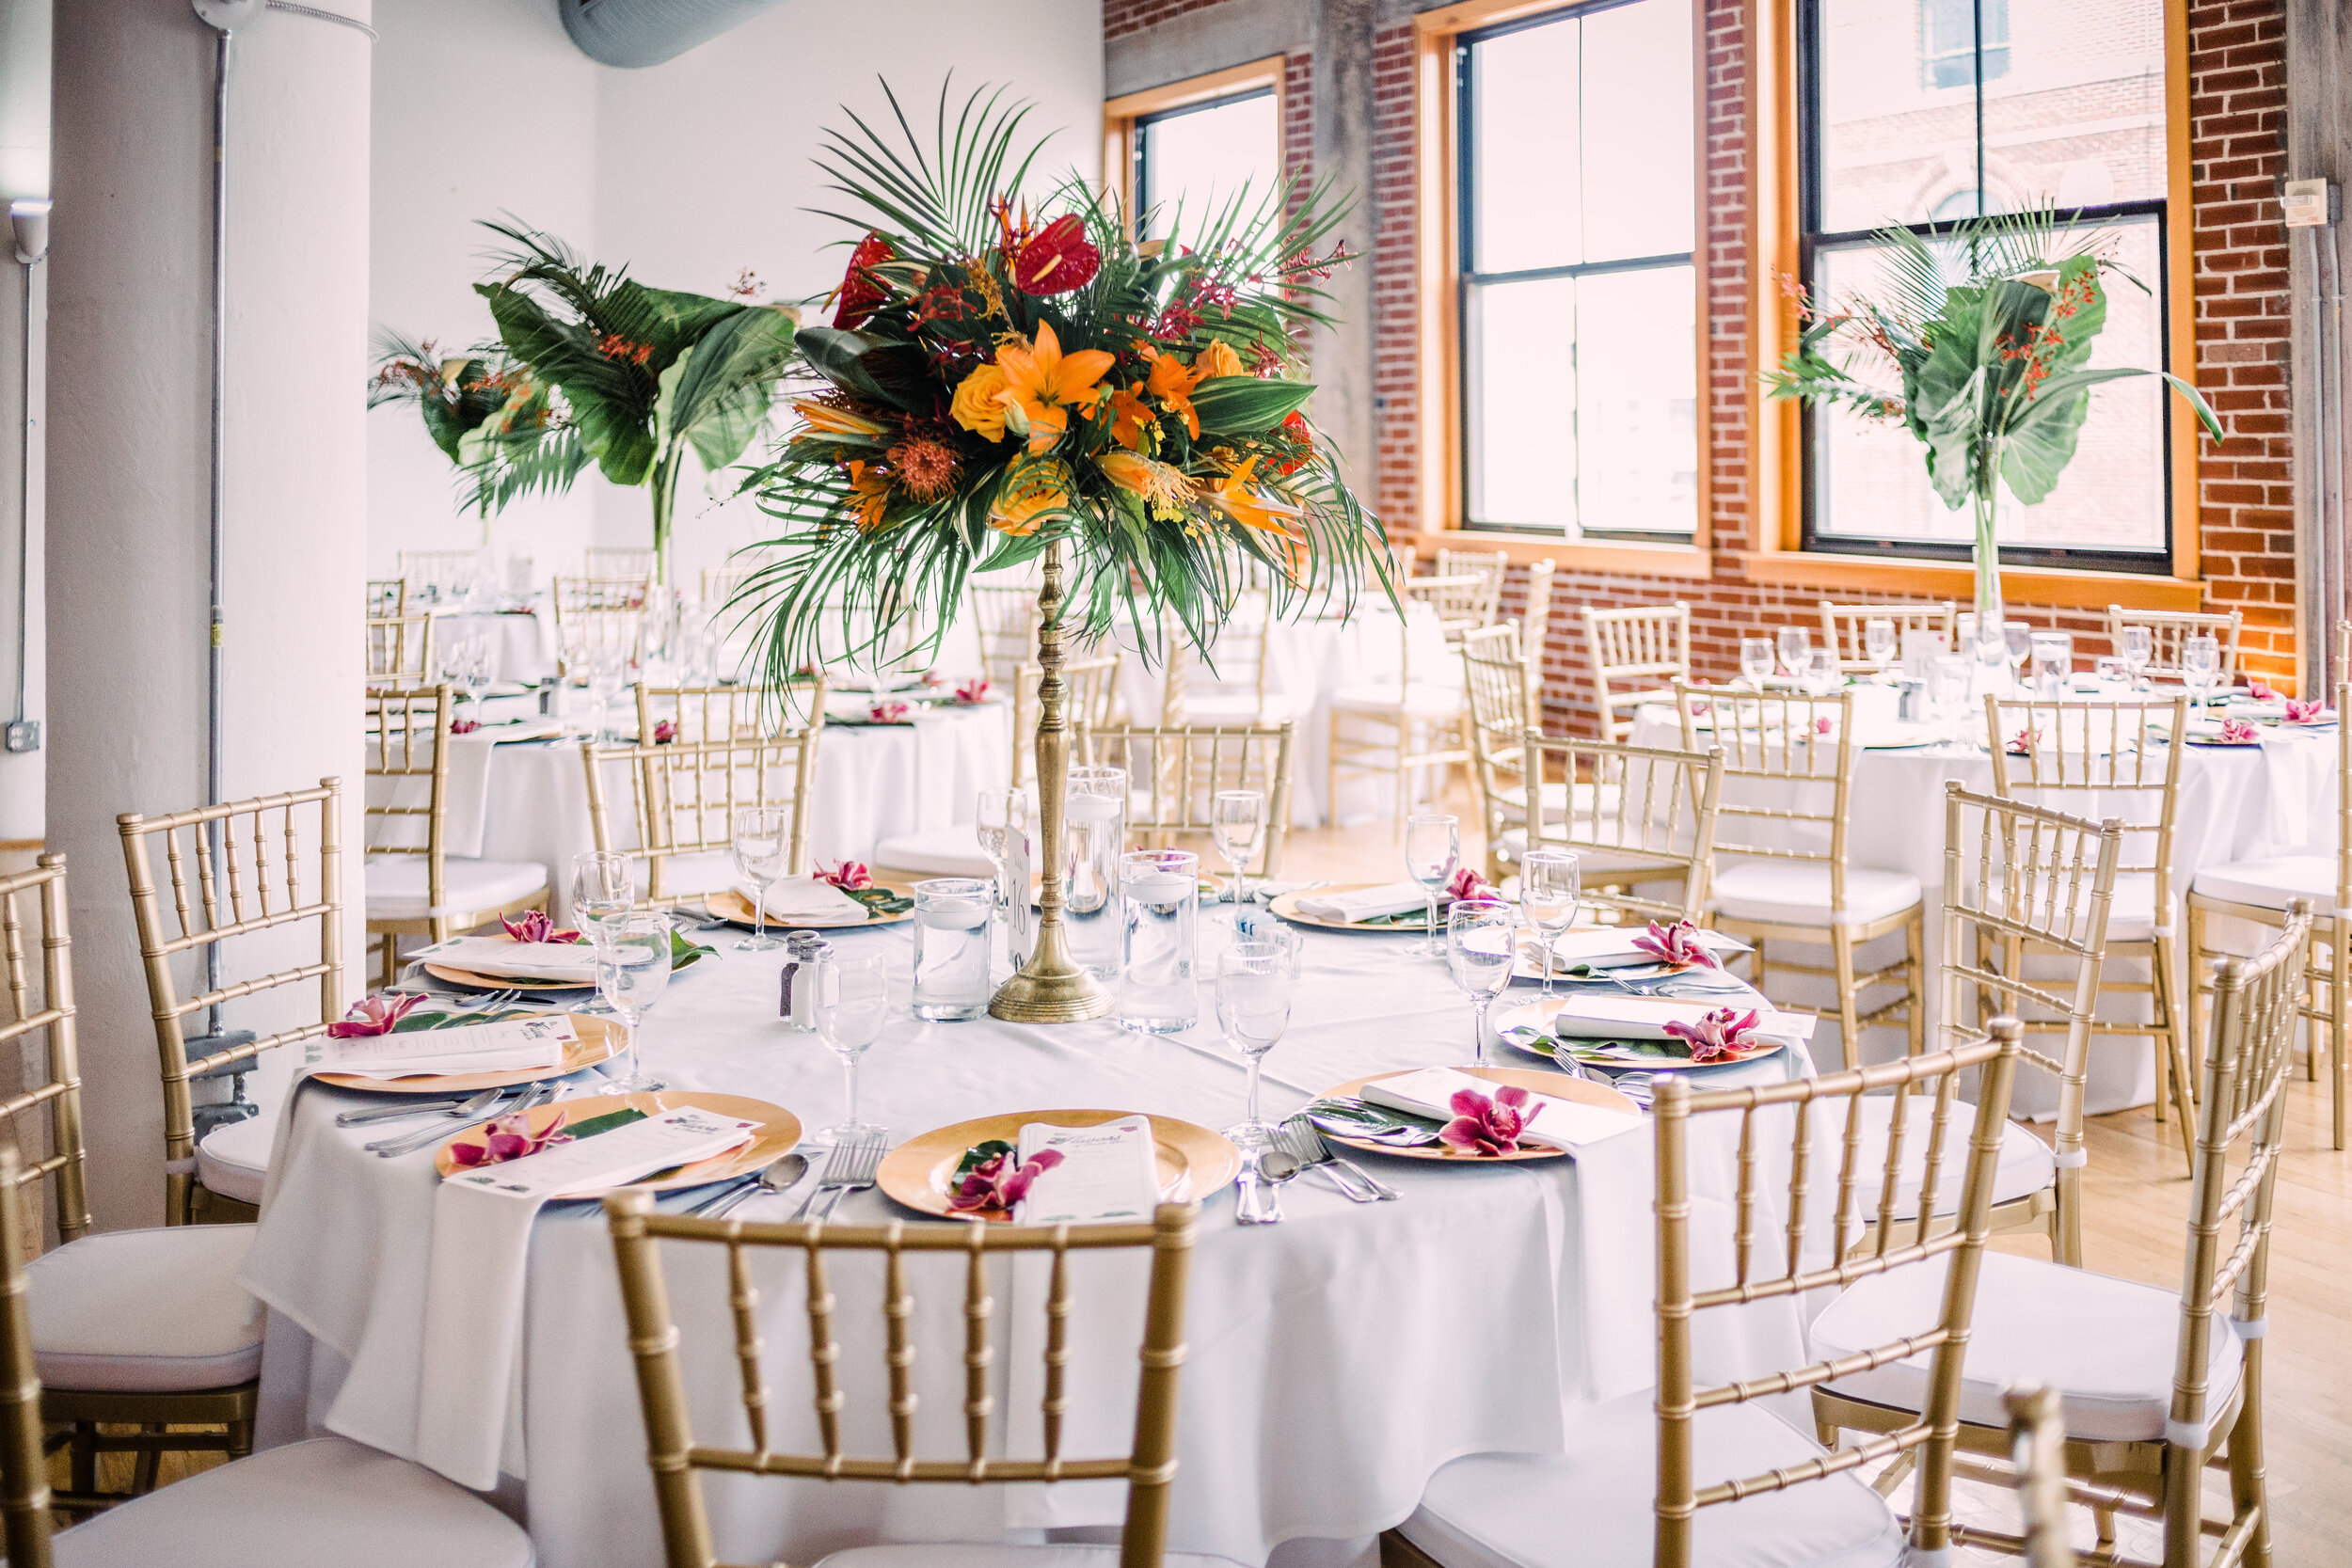 white linens and chairs